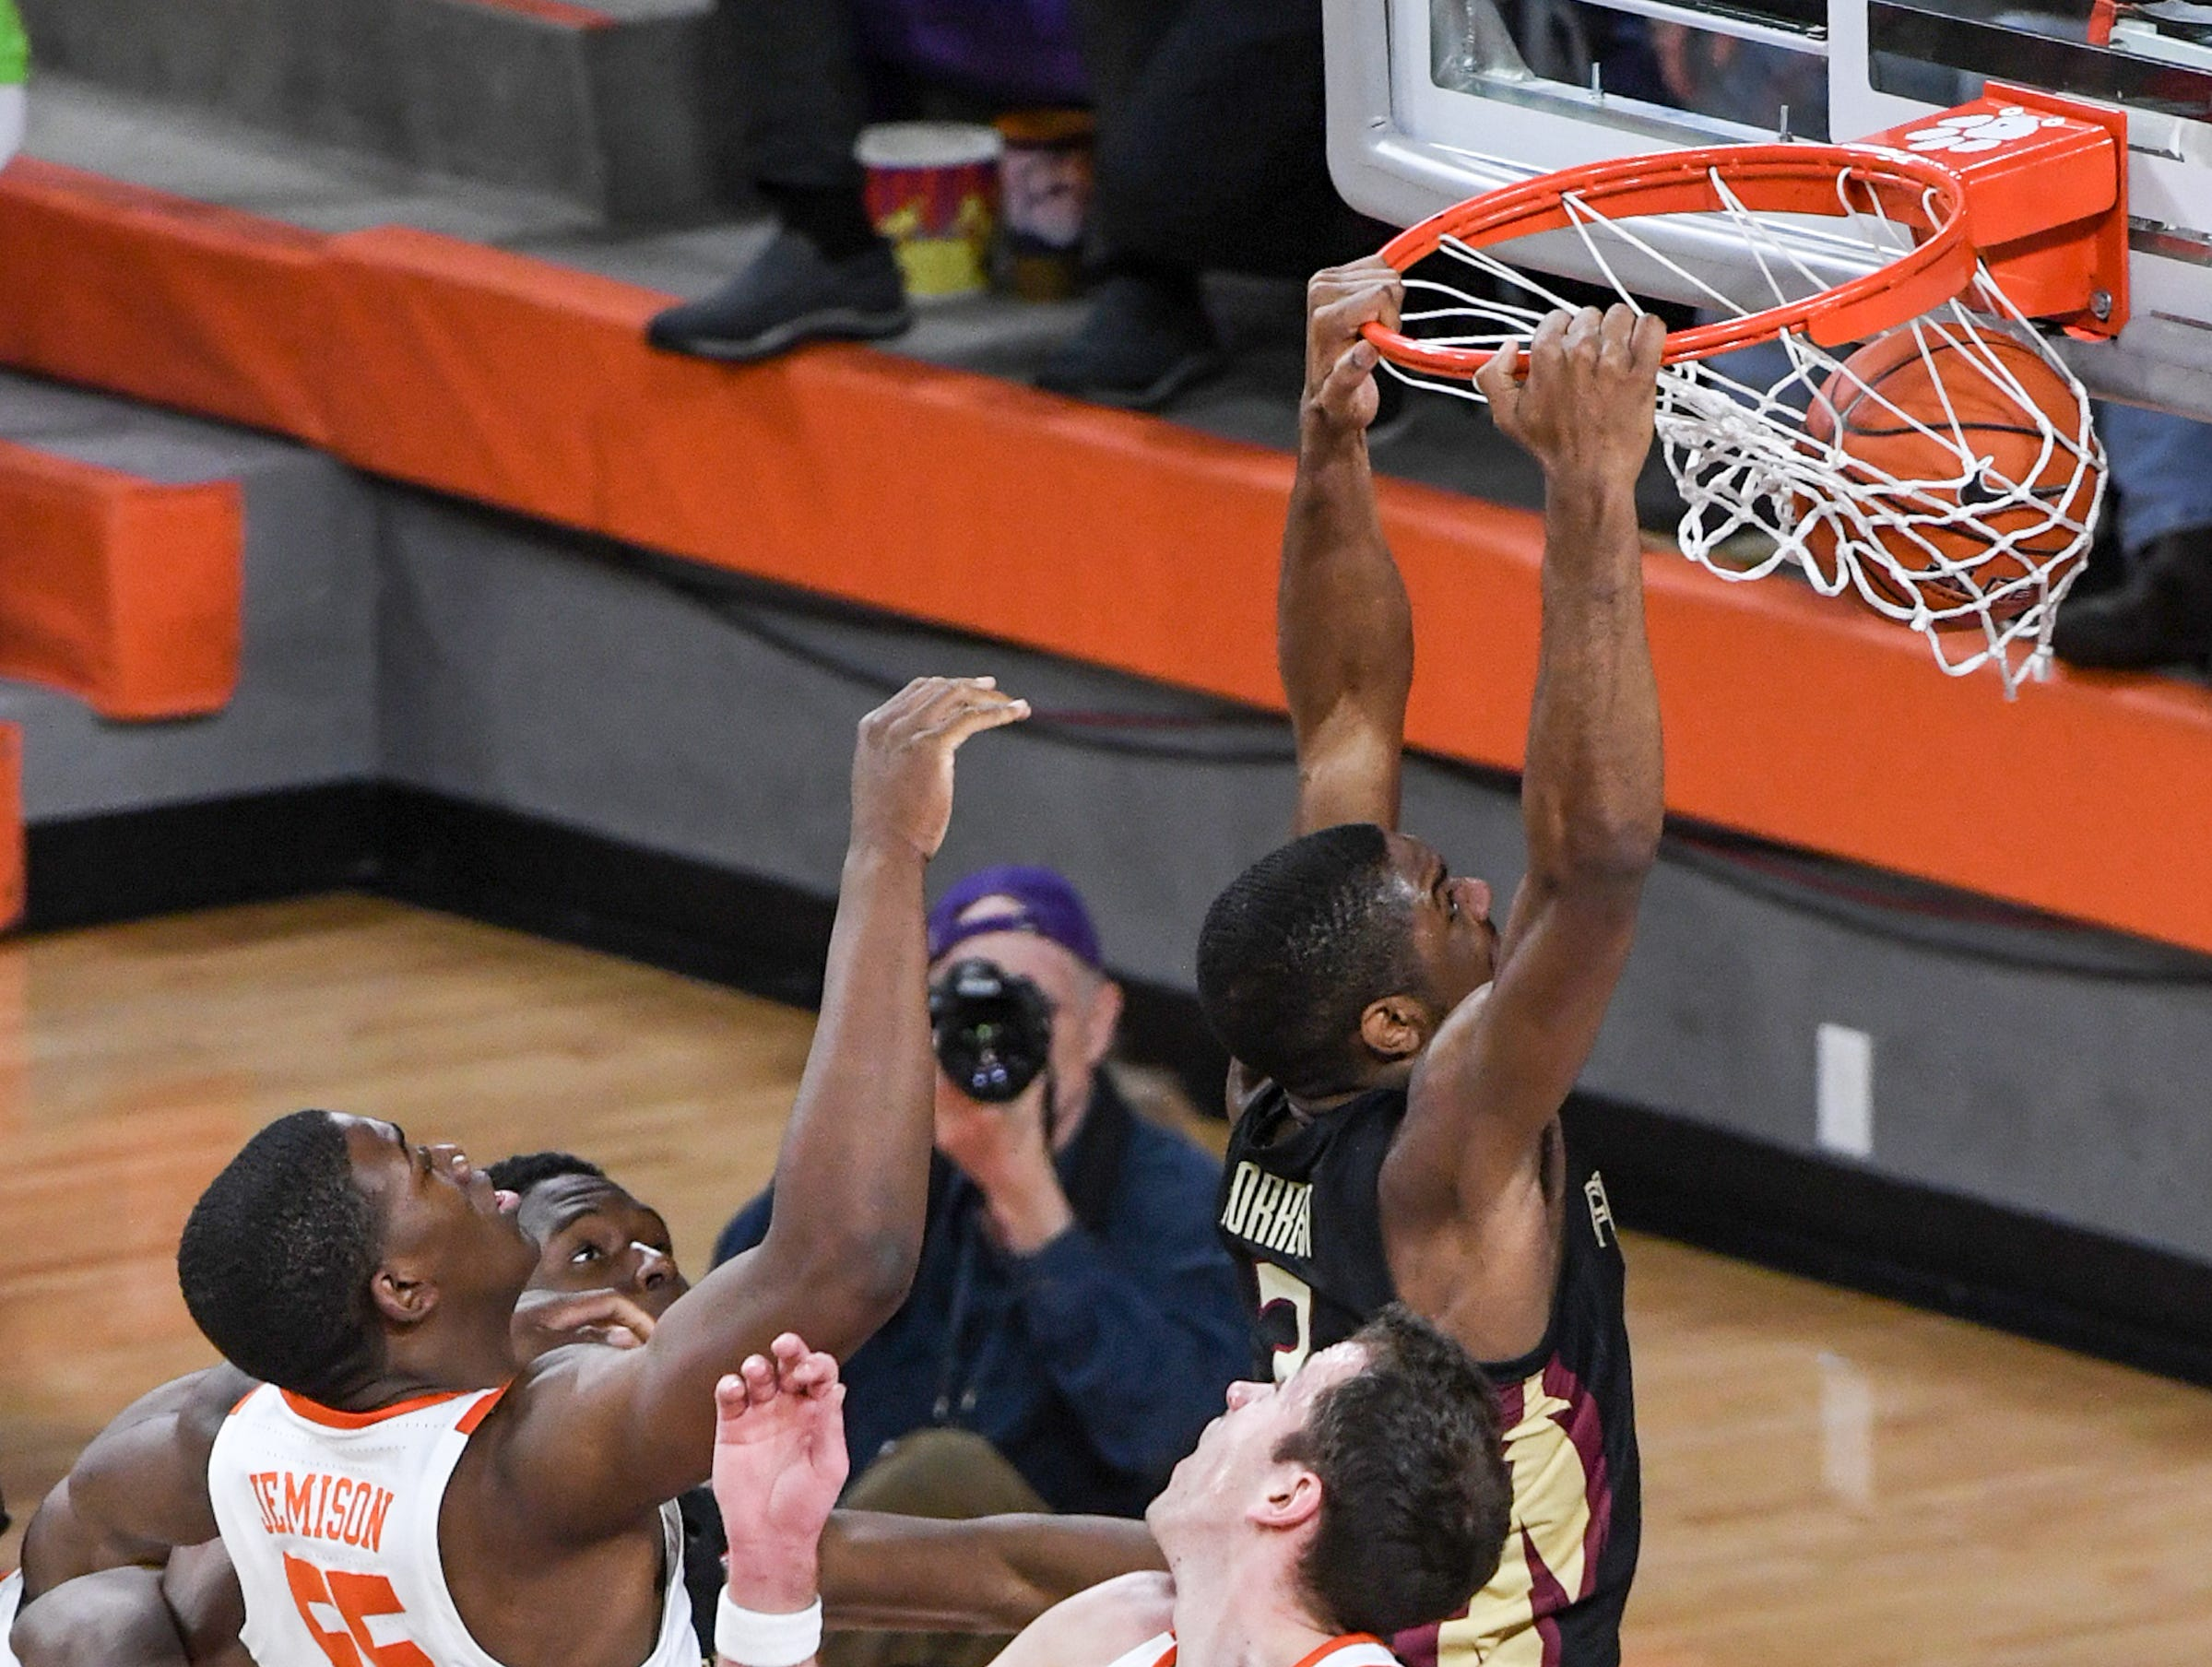 Florida State guard Trent Forrest(3) dunks between Clemson center Trey Jemison (55) and Clemson forward David Skara (24) during the first half at Littlejohn Coliseum in Clemson Tuesday, February 19, 2019.